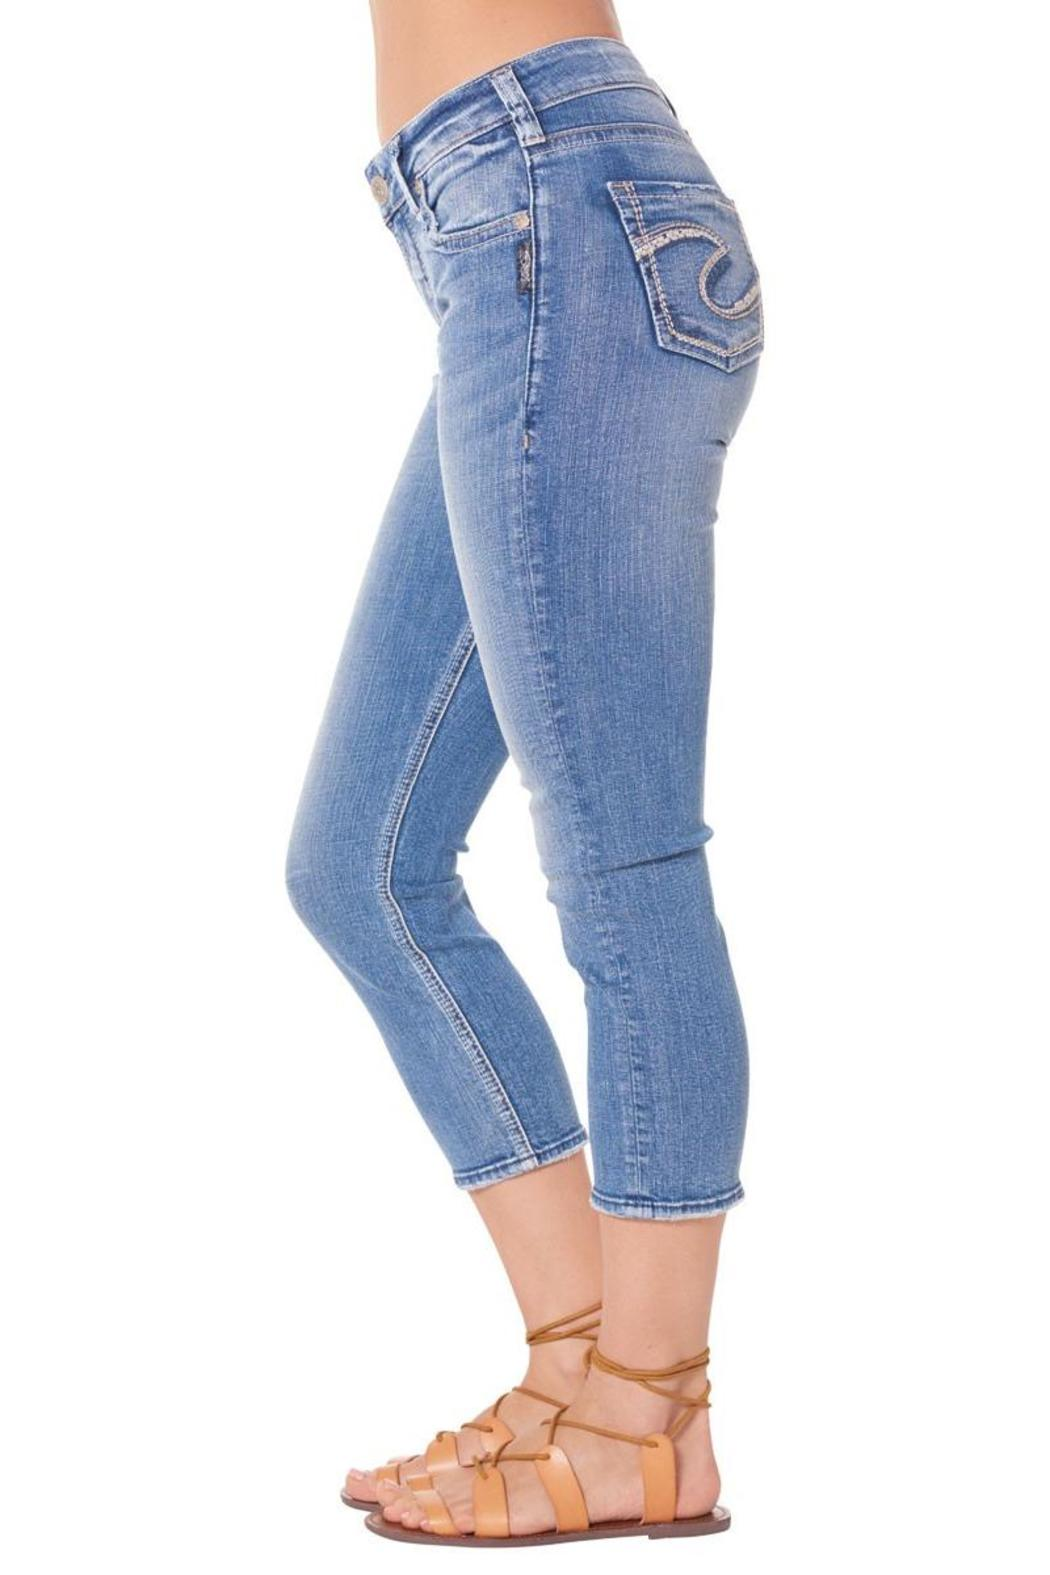 Silver Jeans Co. Suki High Capri Jeans - Front Full Image